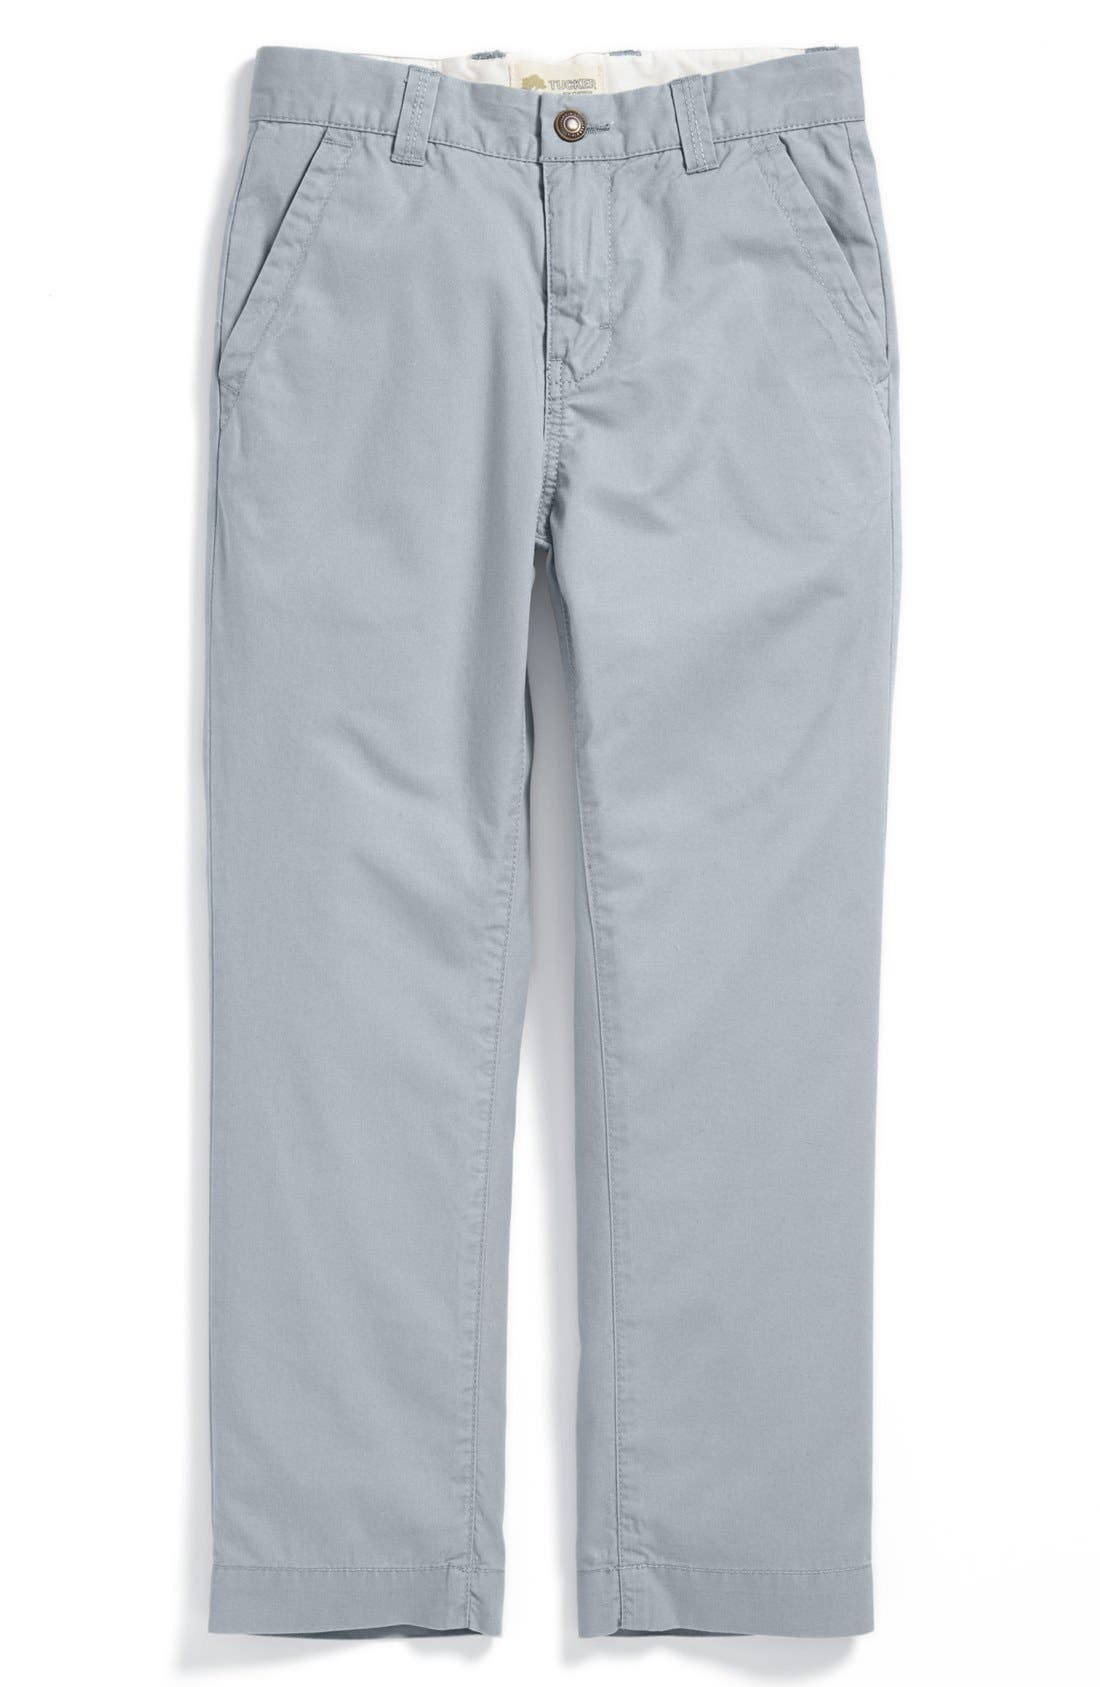 Alternate Image 1 Selected - Tucker + Tate 'Scott' Chino Pants (Little Boys & Big Boys)